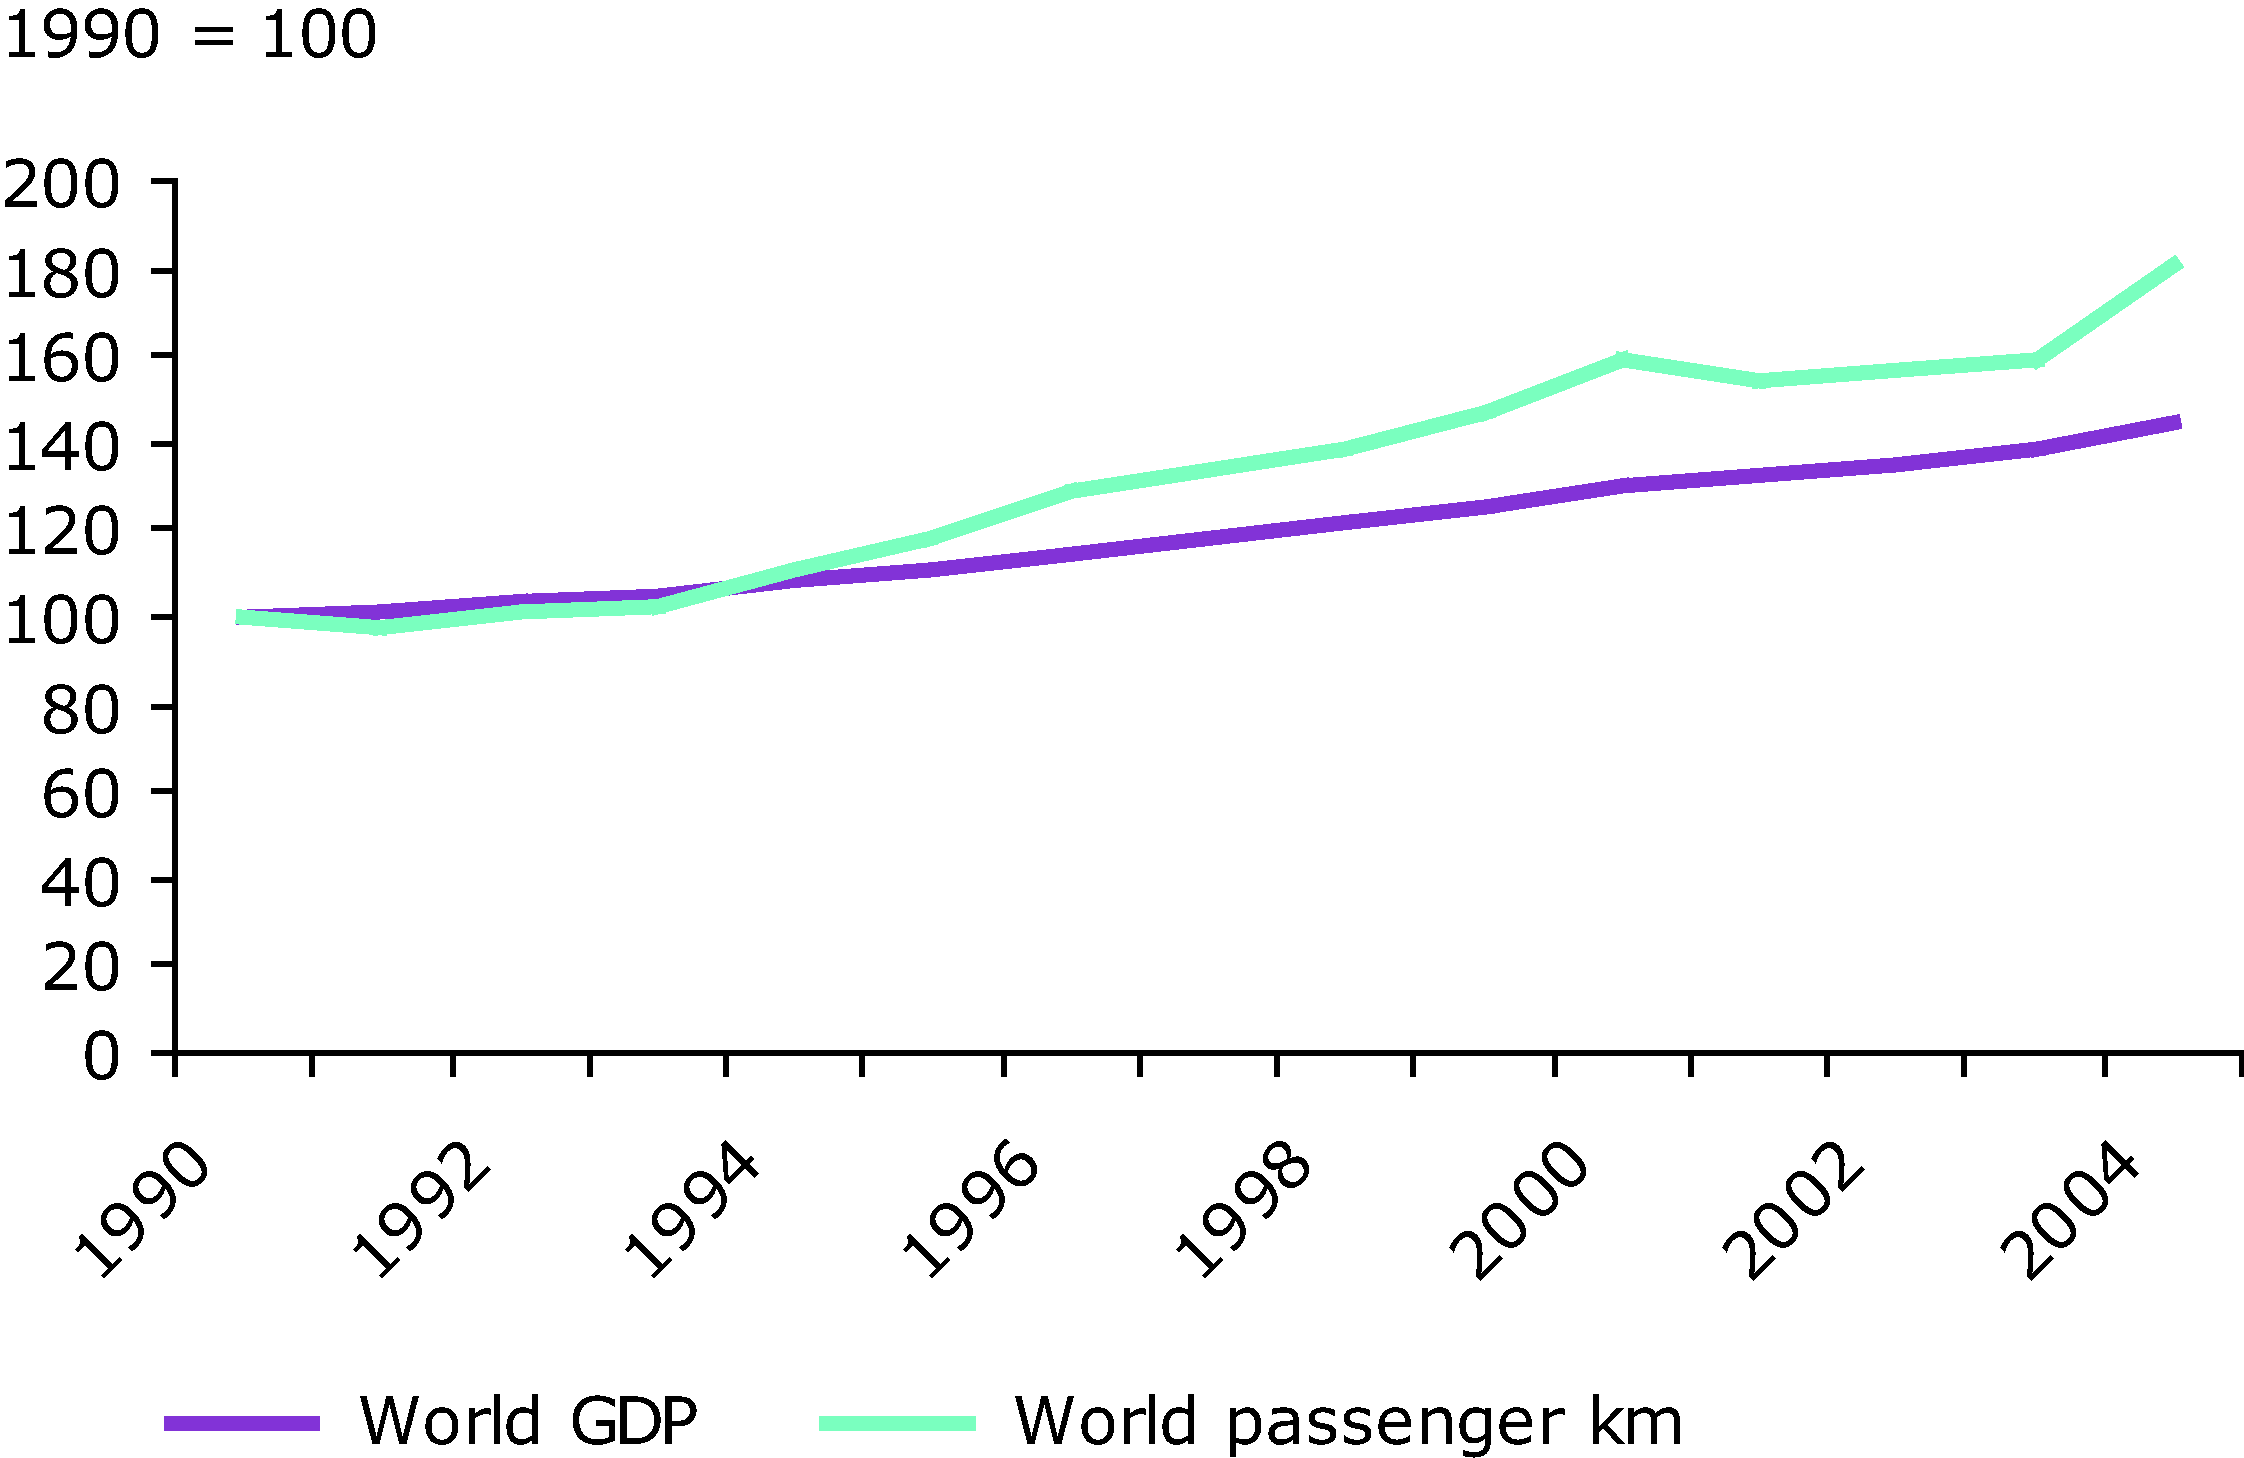 Global Air transportation volumes and GDP (1990 = 100)